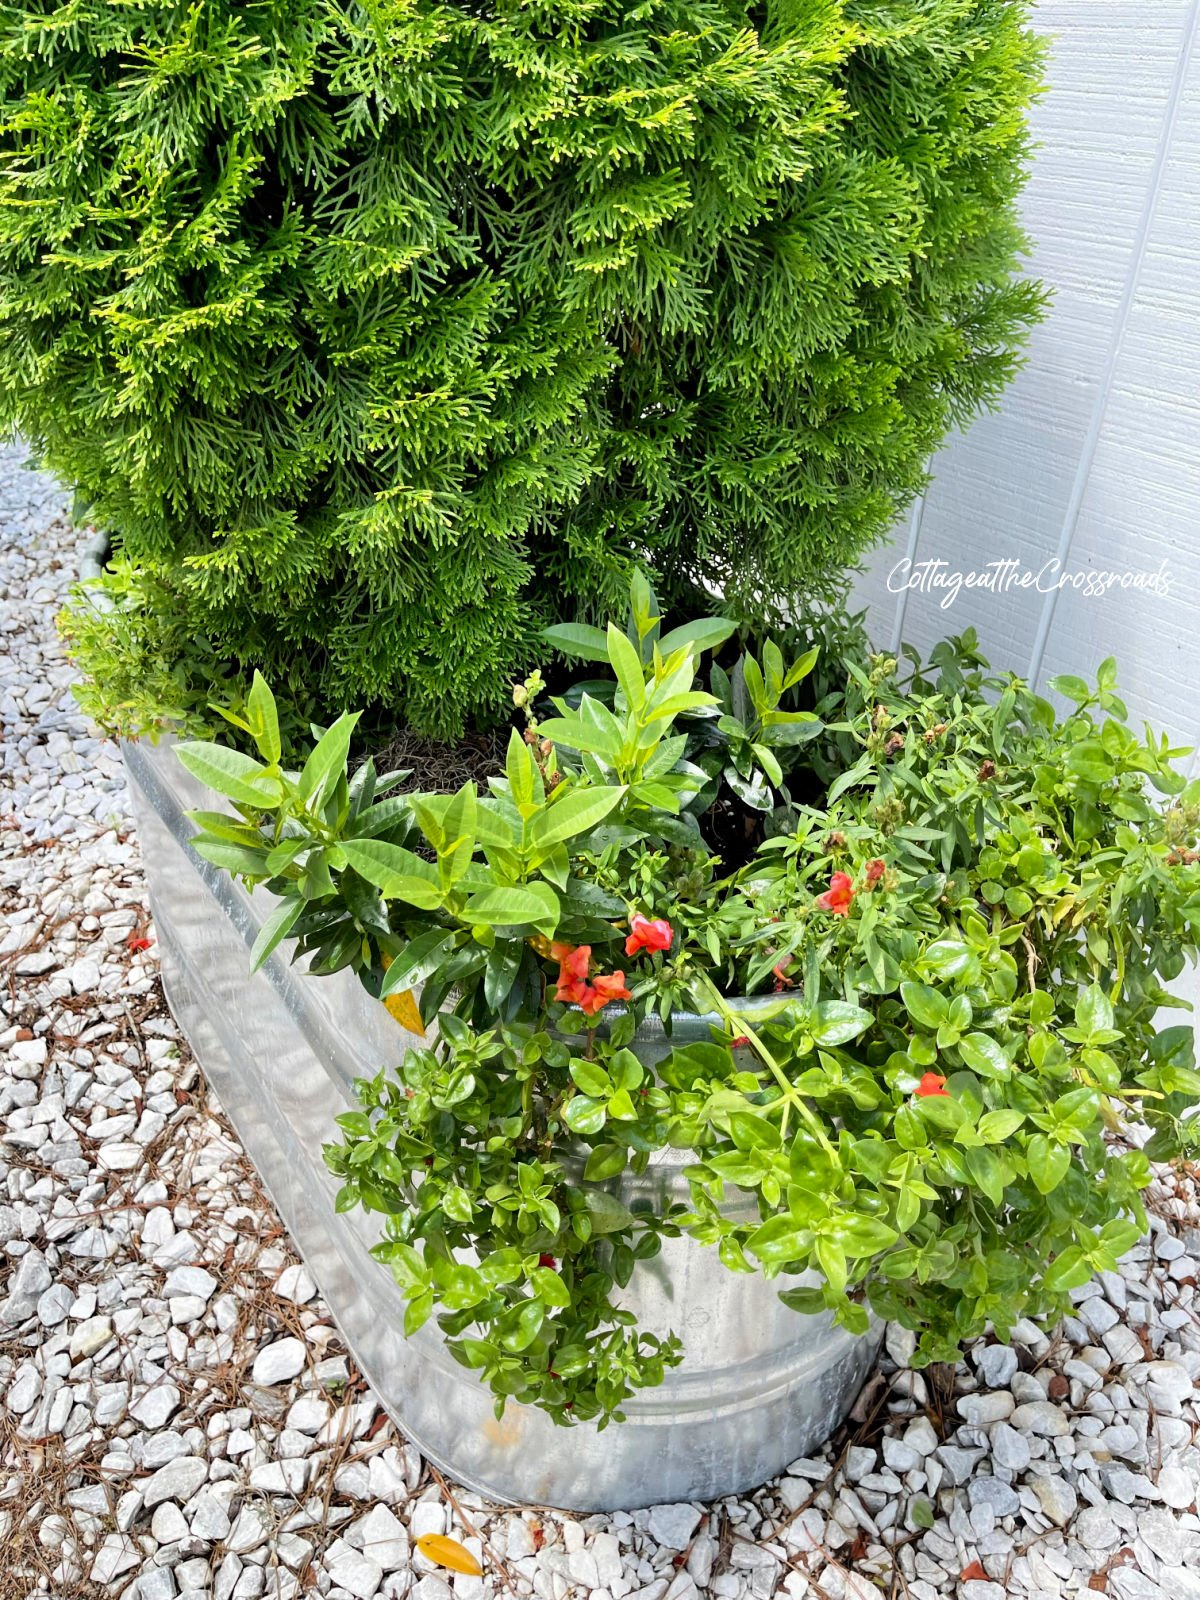 snapdragons and other plants in a metal watering trough